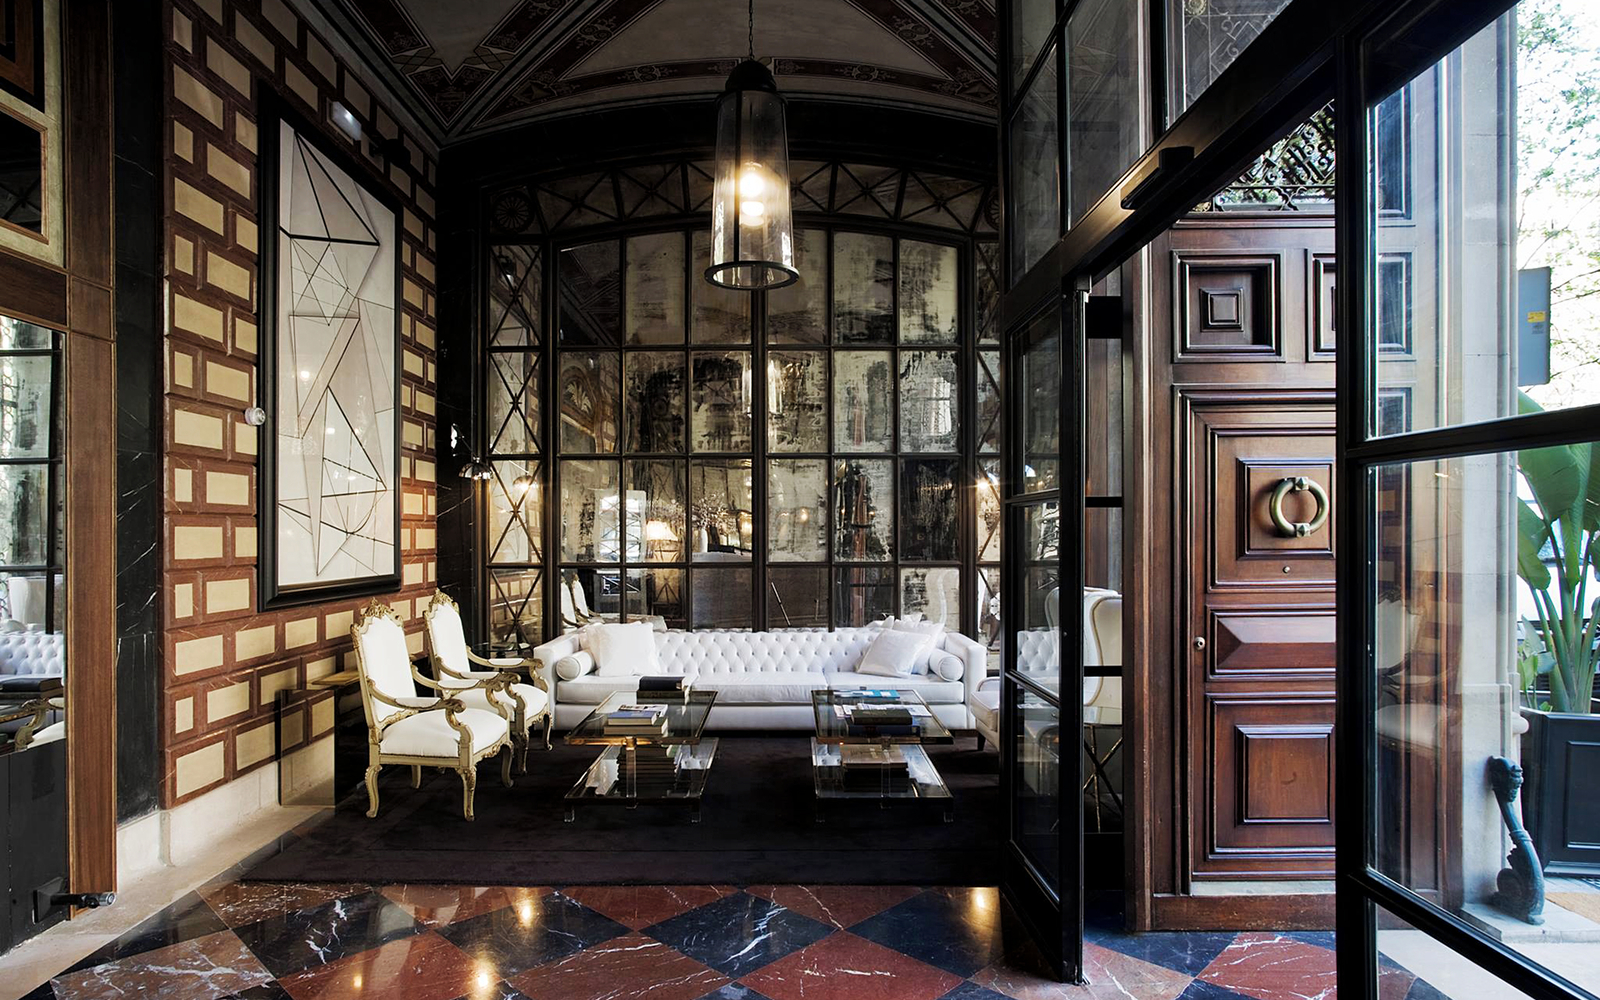 Cotton House Hotel, Autograph Collection in Barcelona